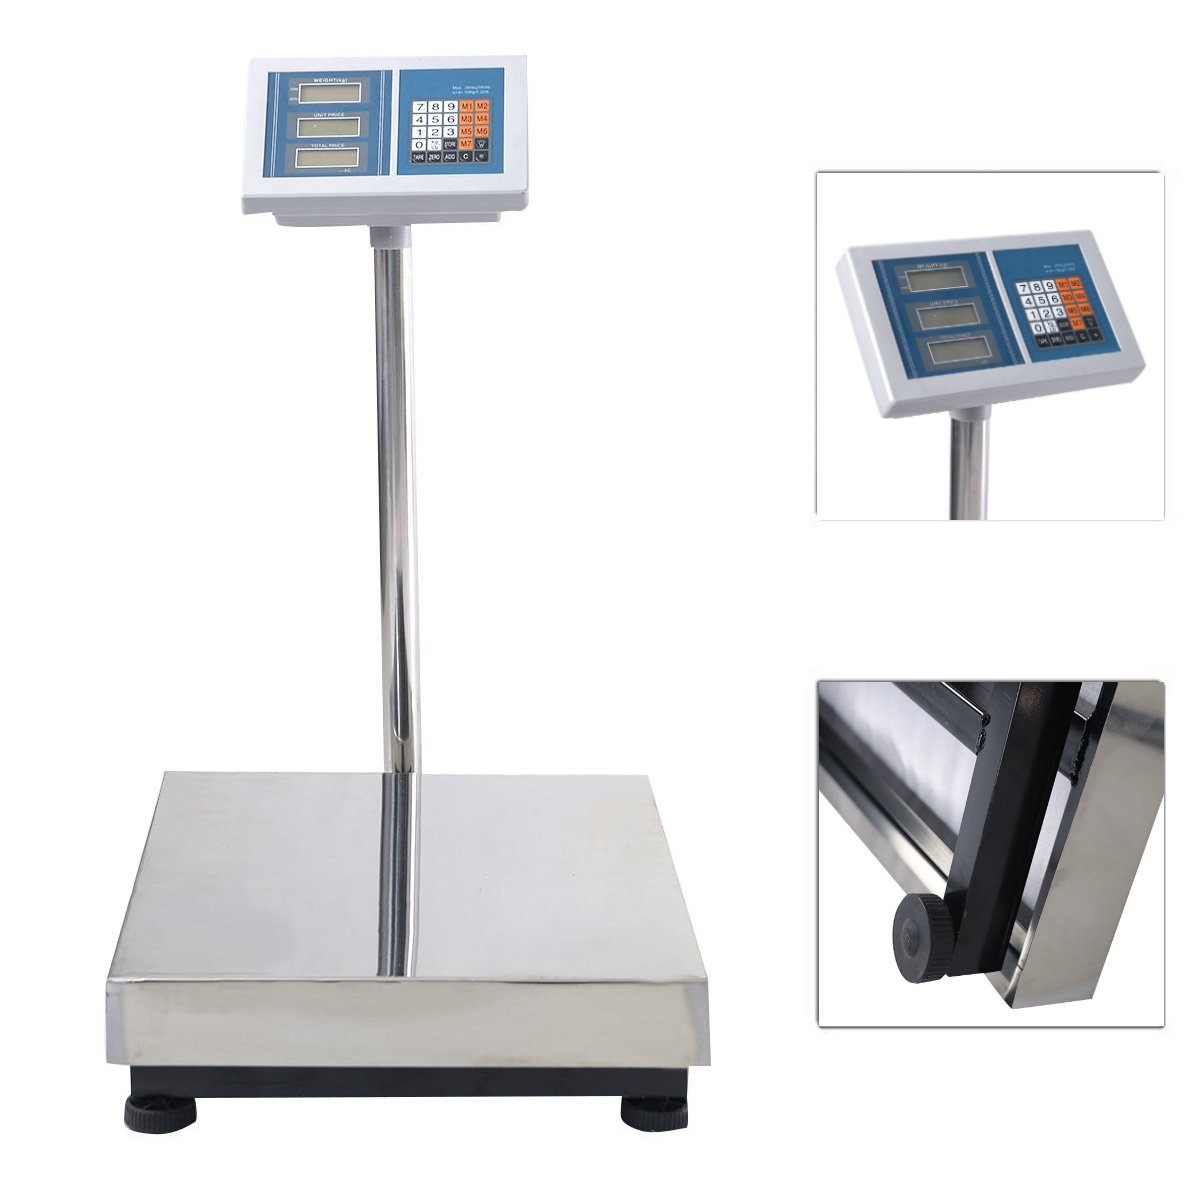 660LB / 300KG Weight Computing Digital Floor Platform Scale Bench | Weighing Post Office Shipping Food Agriculture Livestock